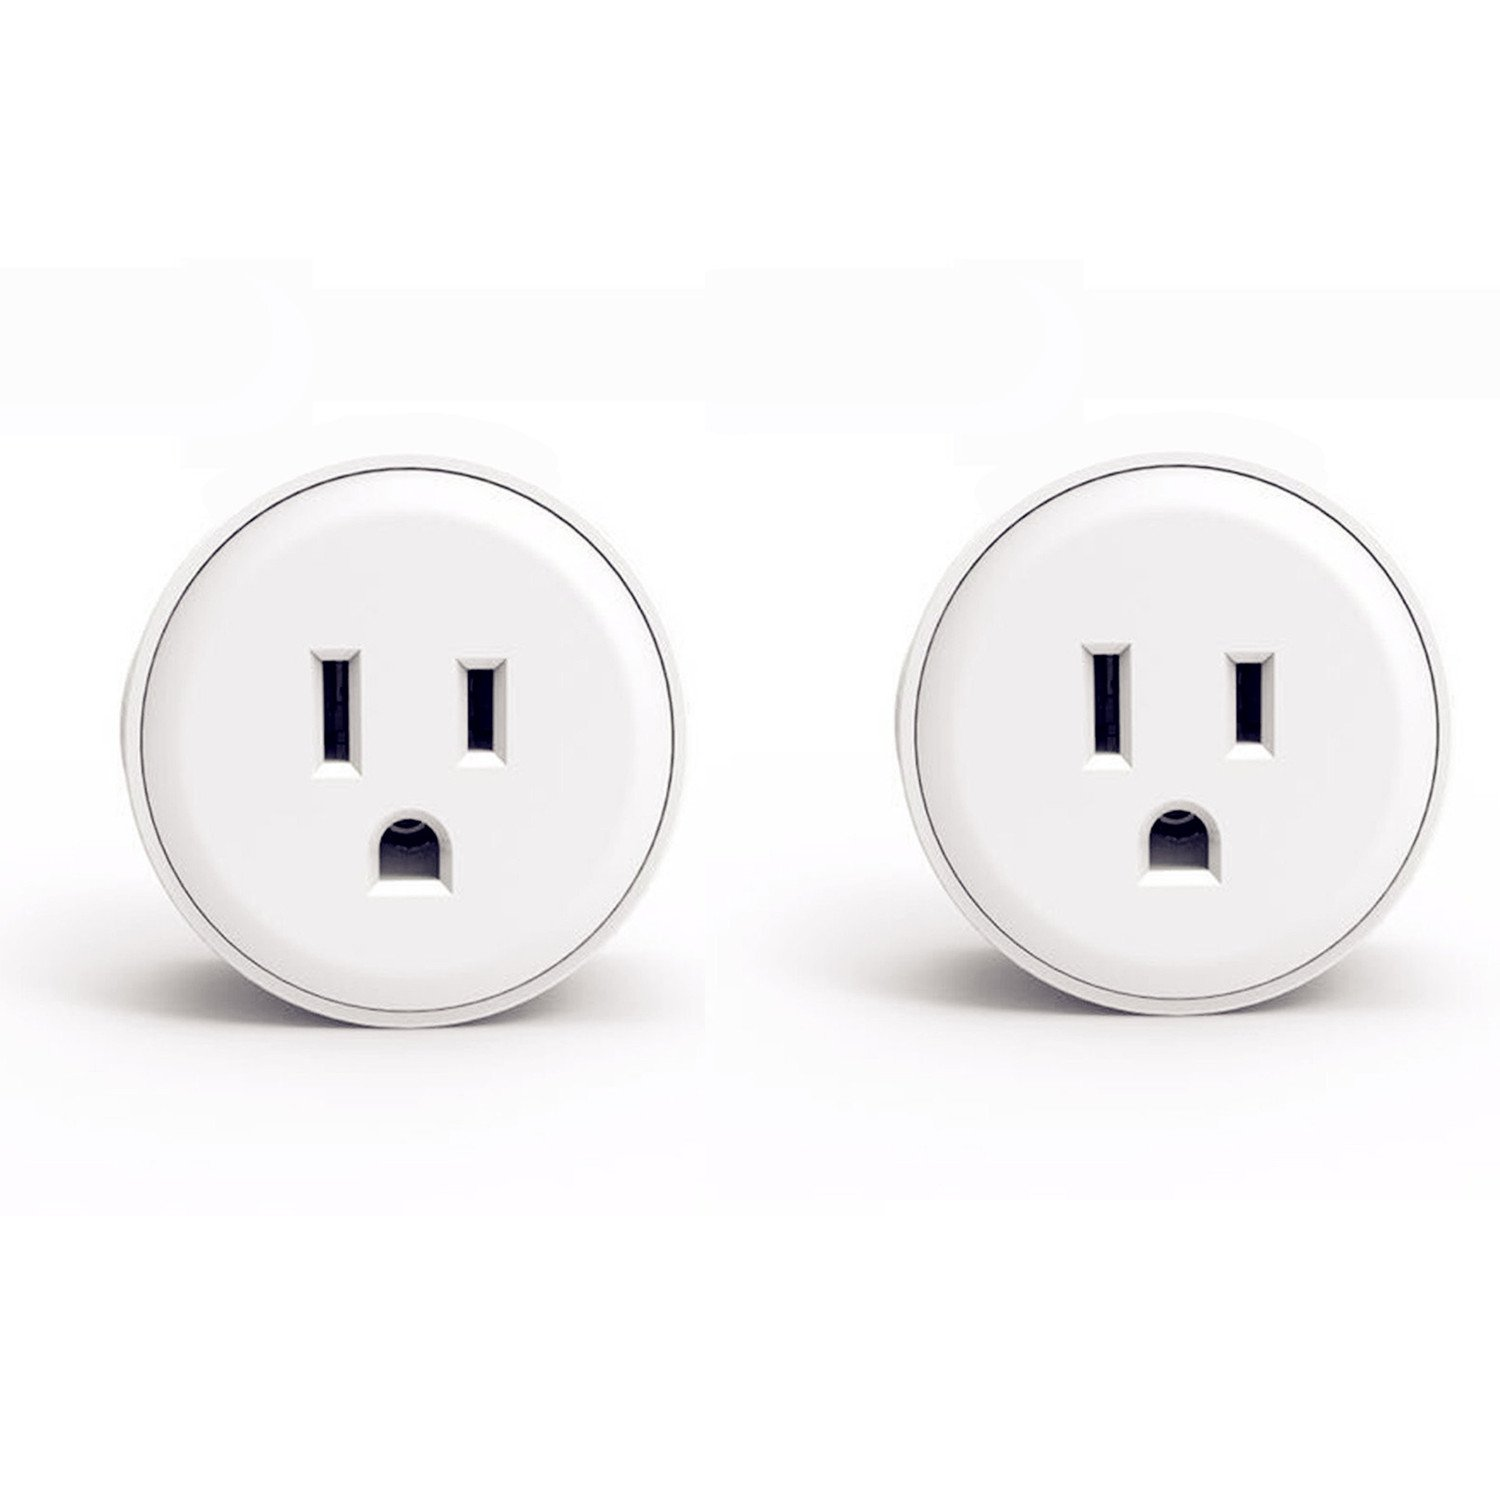 Cevitor Smart Home WIFI Power Socket Plug Outlet, Alexa and Smart Phone Wireless Controls, Not Hub Required (Mini 2-Pack)